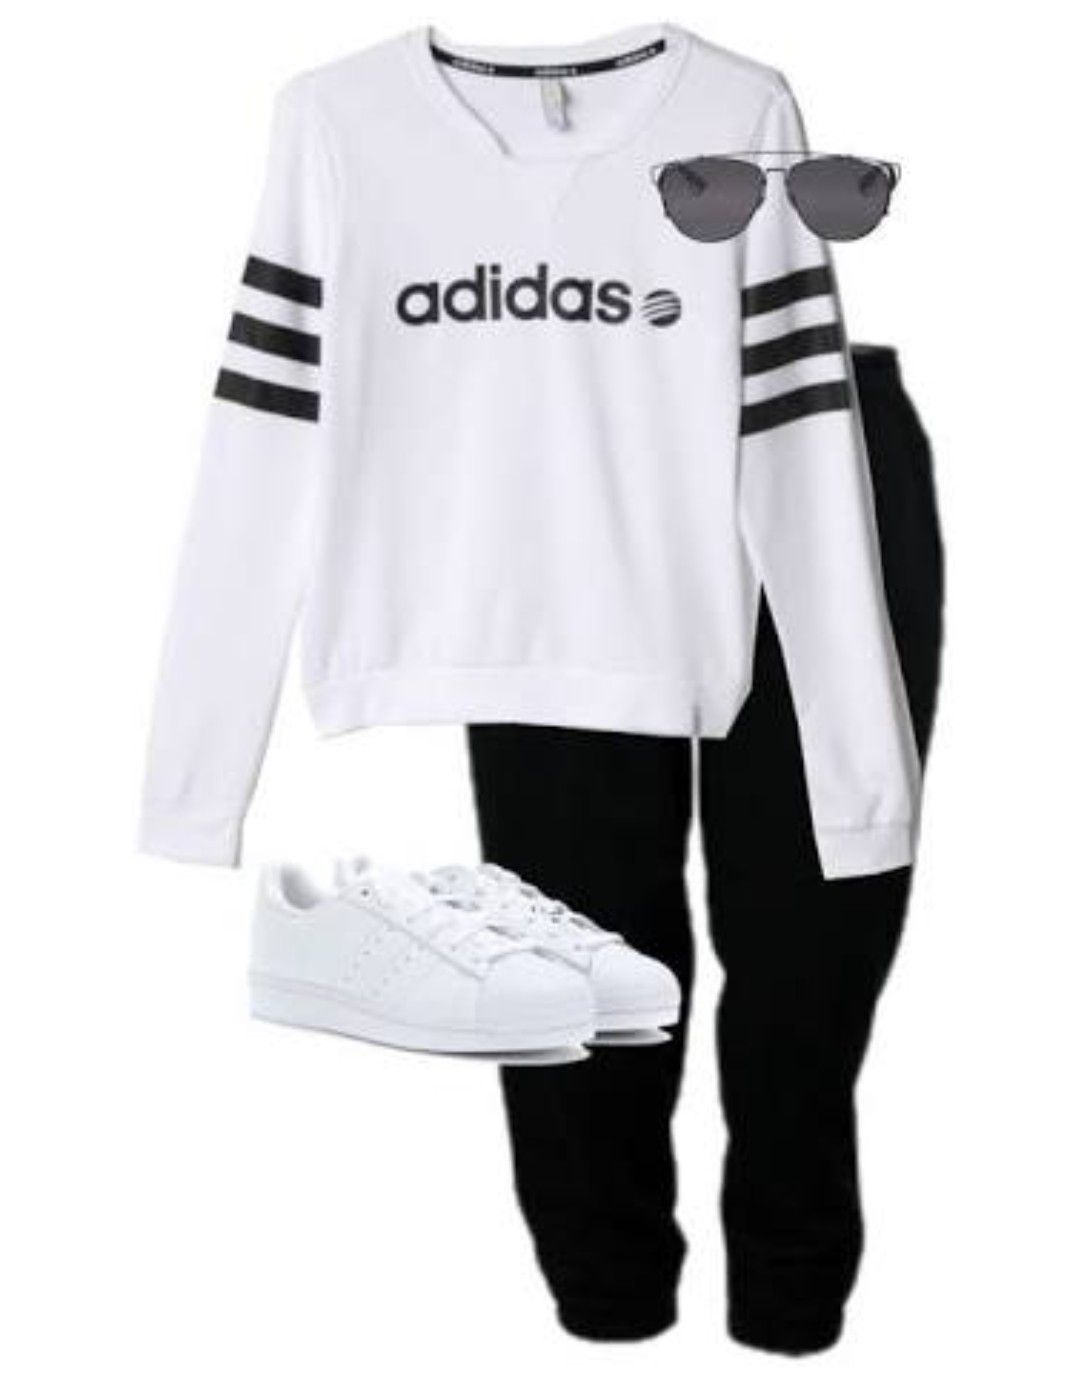 New adidas clothing outfit on google  7578a847301